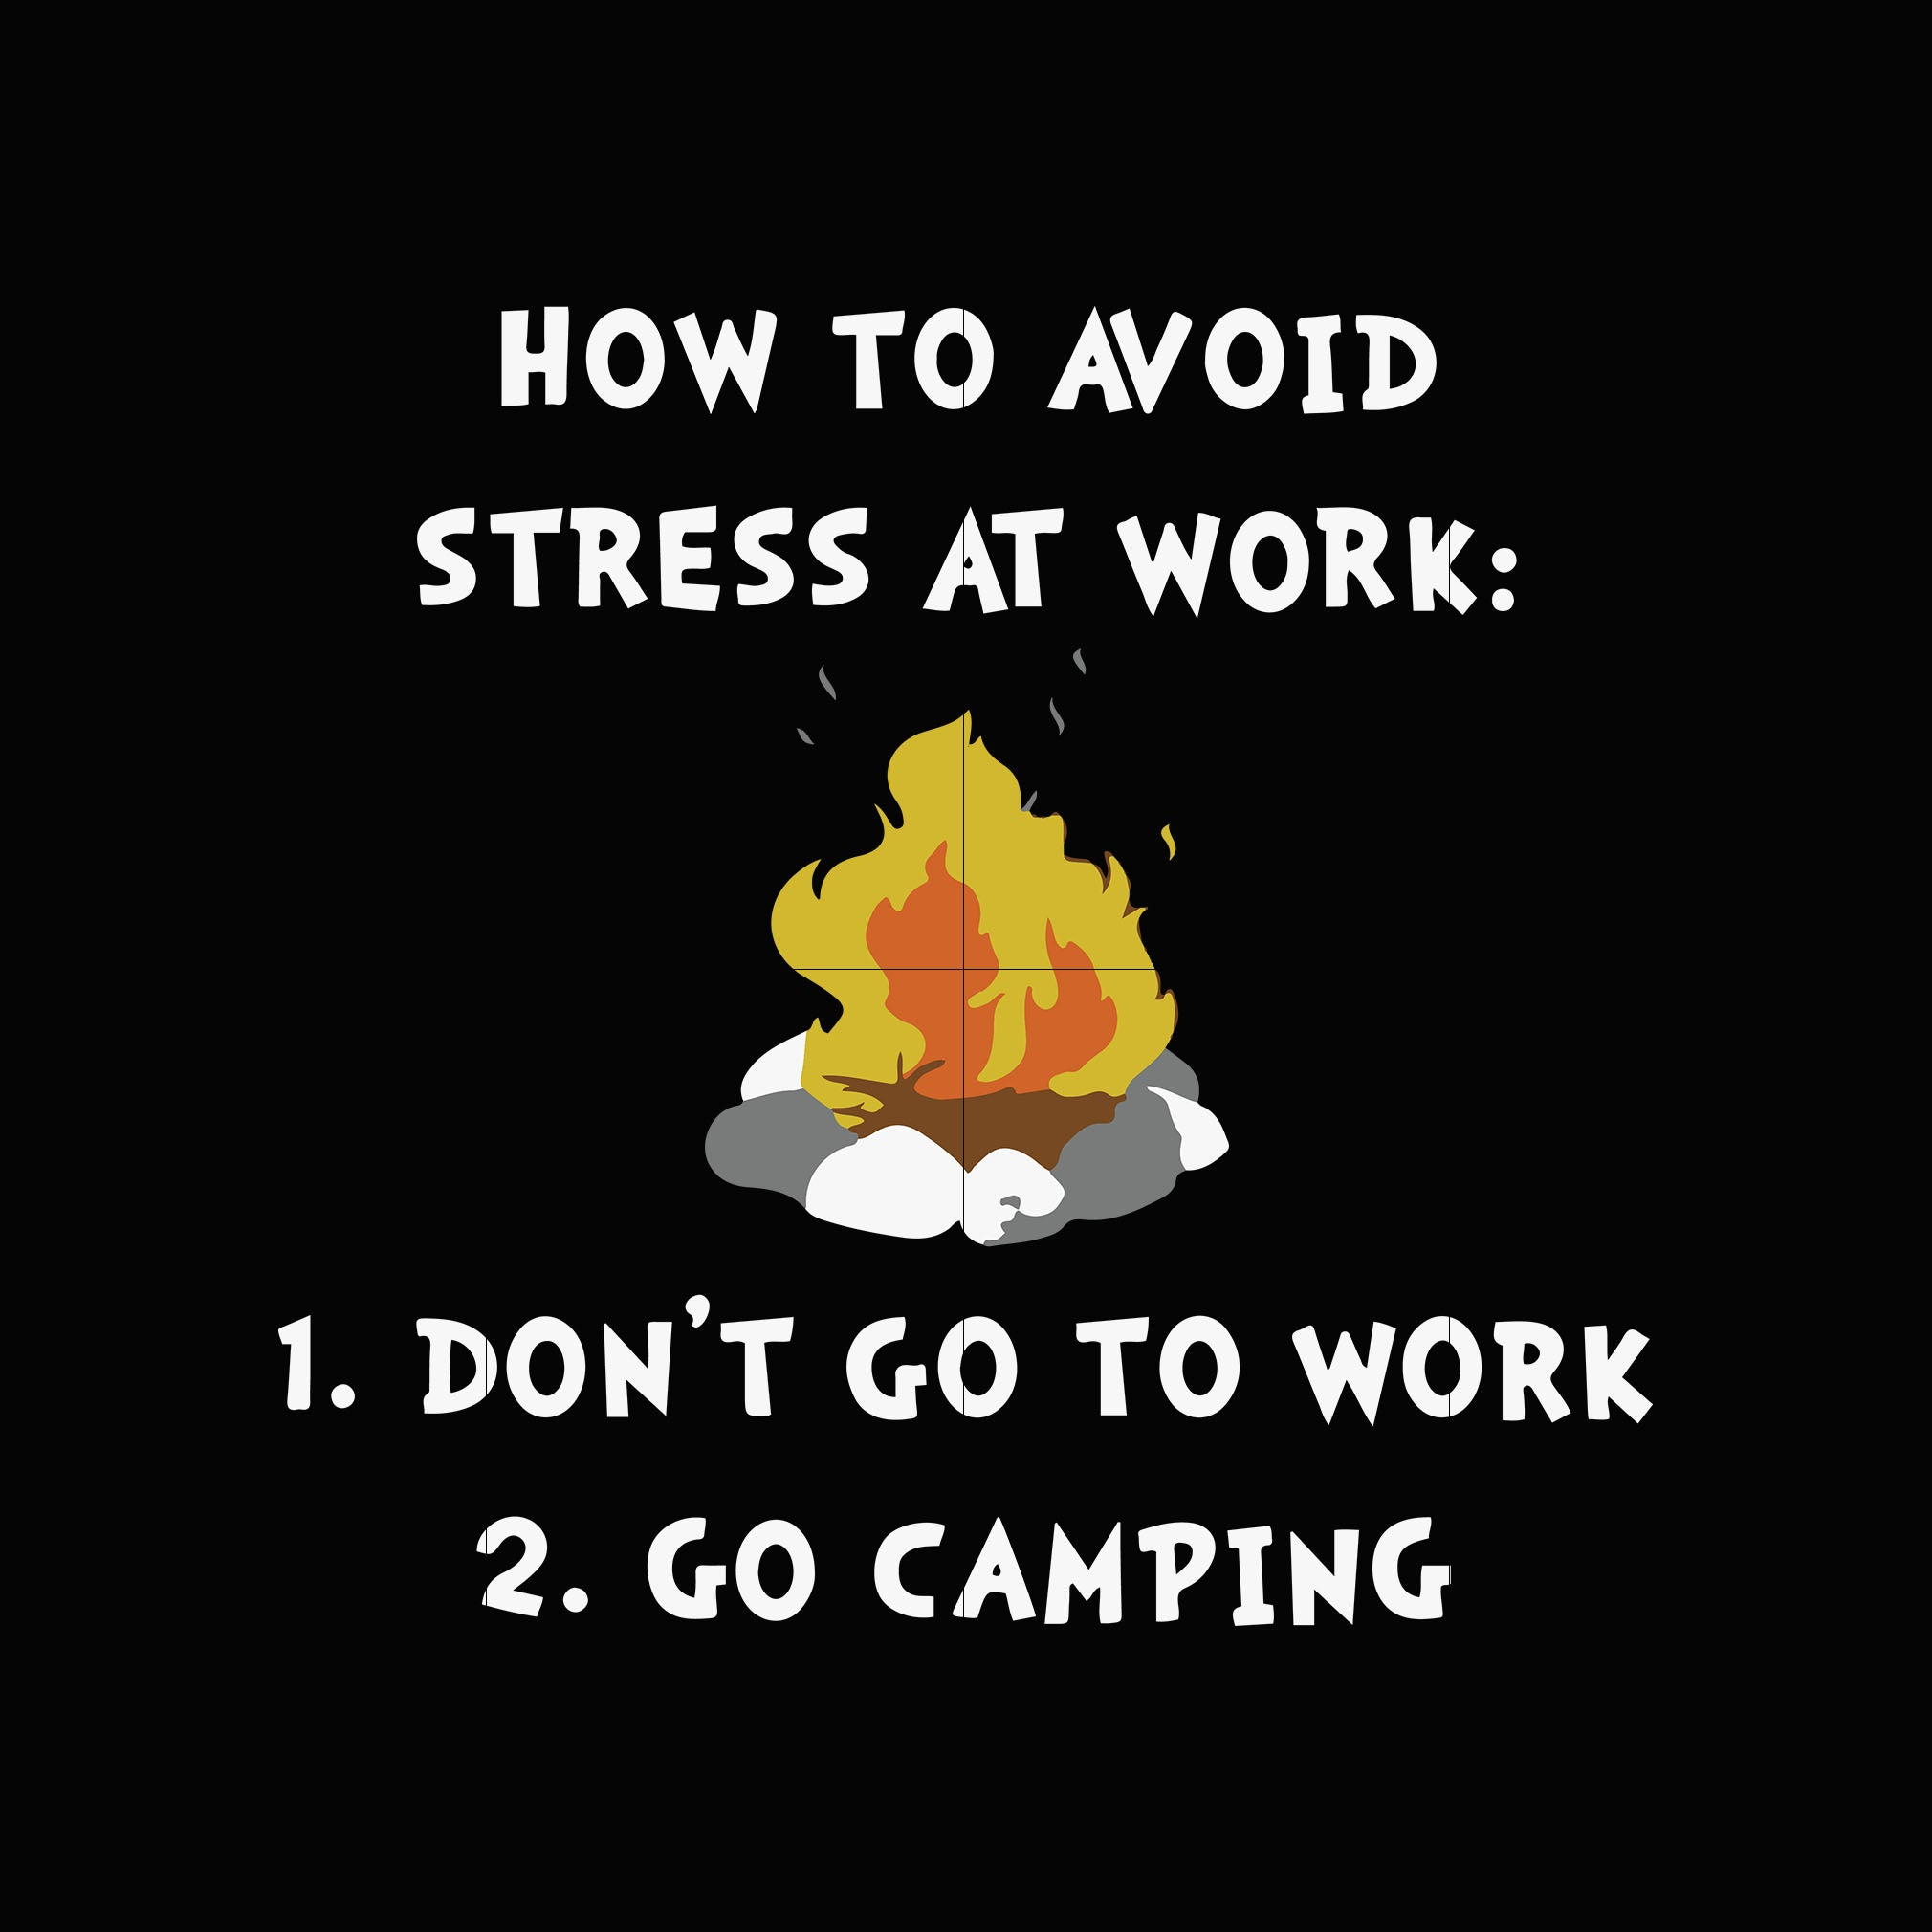 How to avoid stress at work don't go to work go camping svg,dxf,eps,png digital file